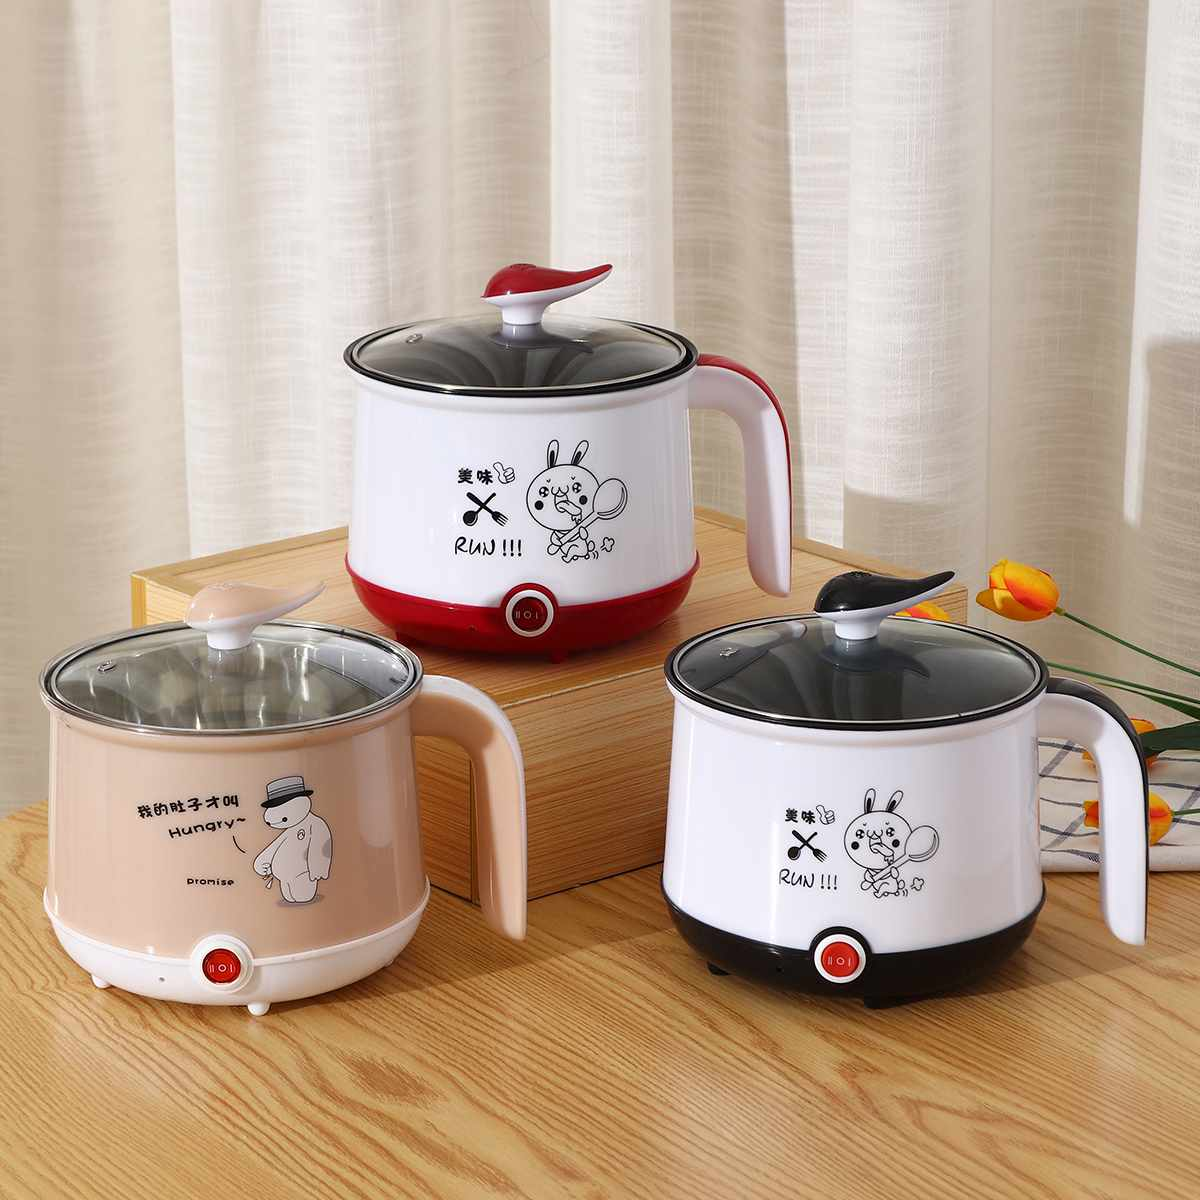 220V EU Mini Multifunction Electric Cooking Machine Single Layer Available Hot Pot Multi Electric Rice Cooker